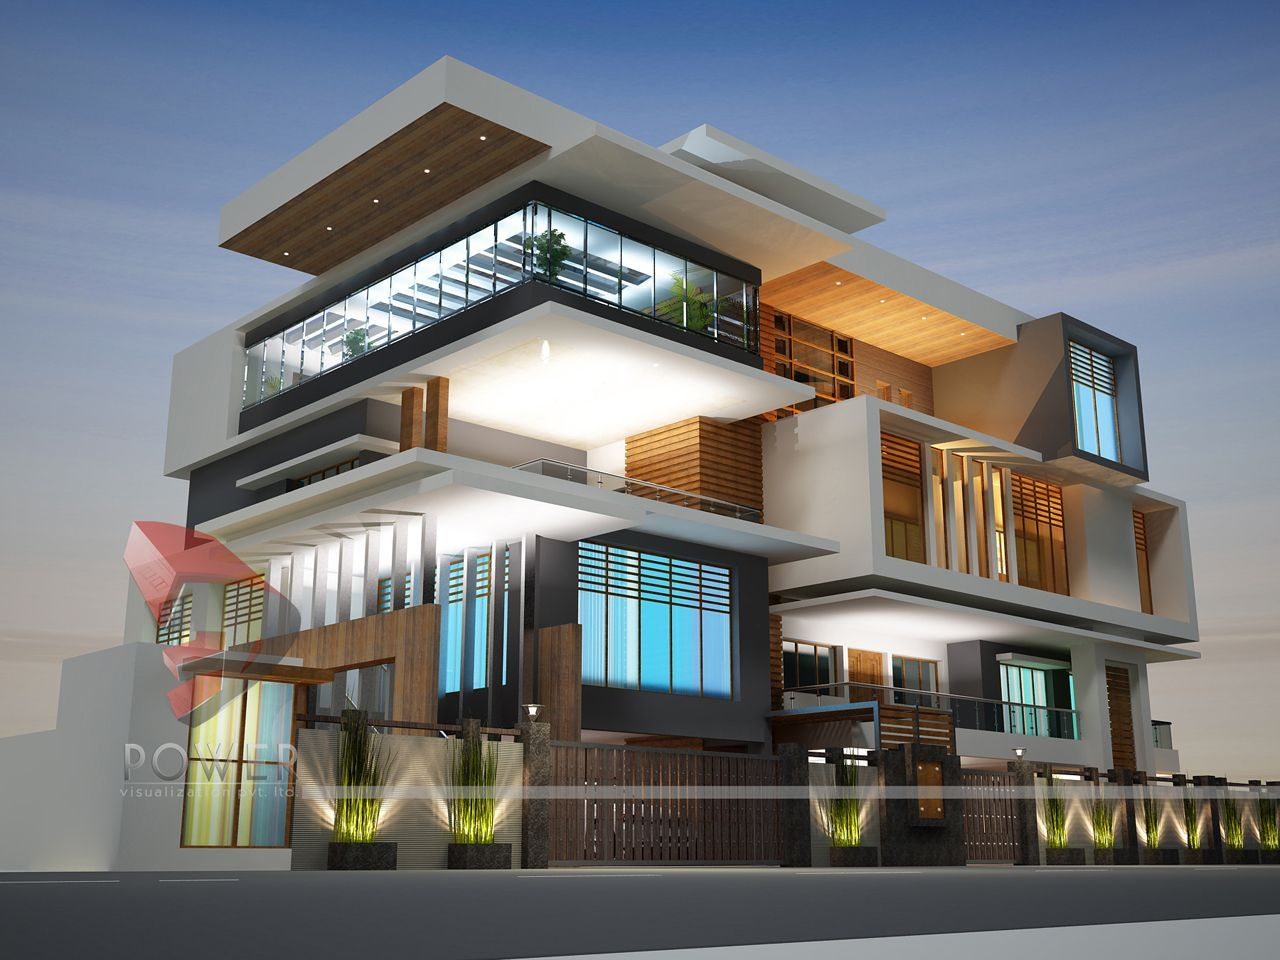 Modern house design in india architecture india modern for Architecture design of house